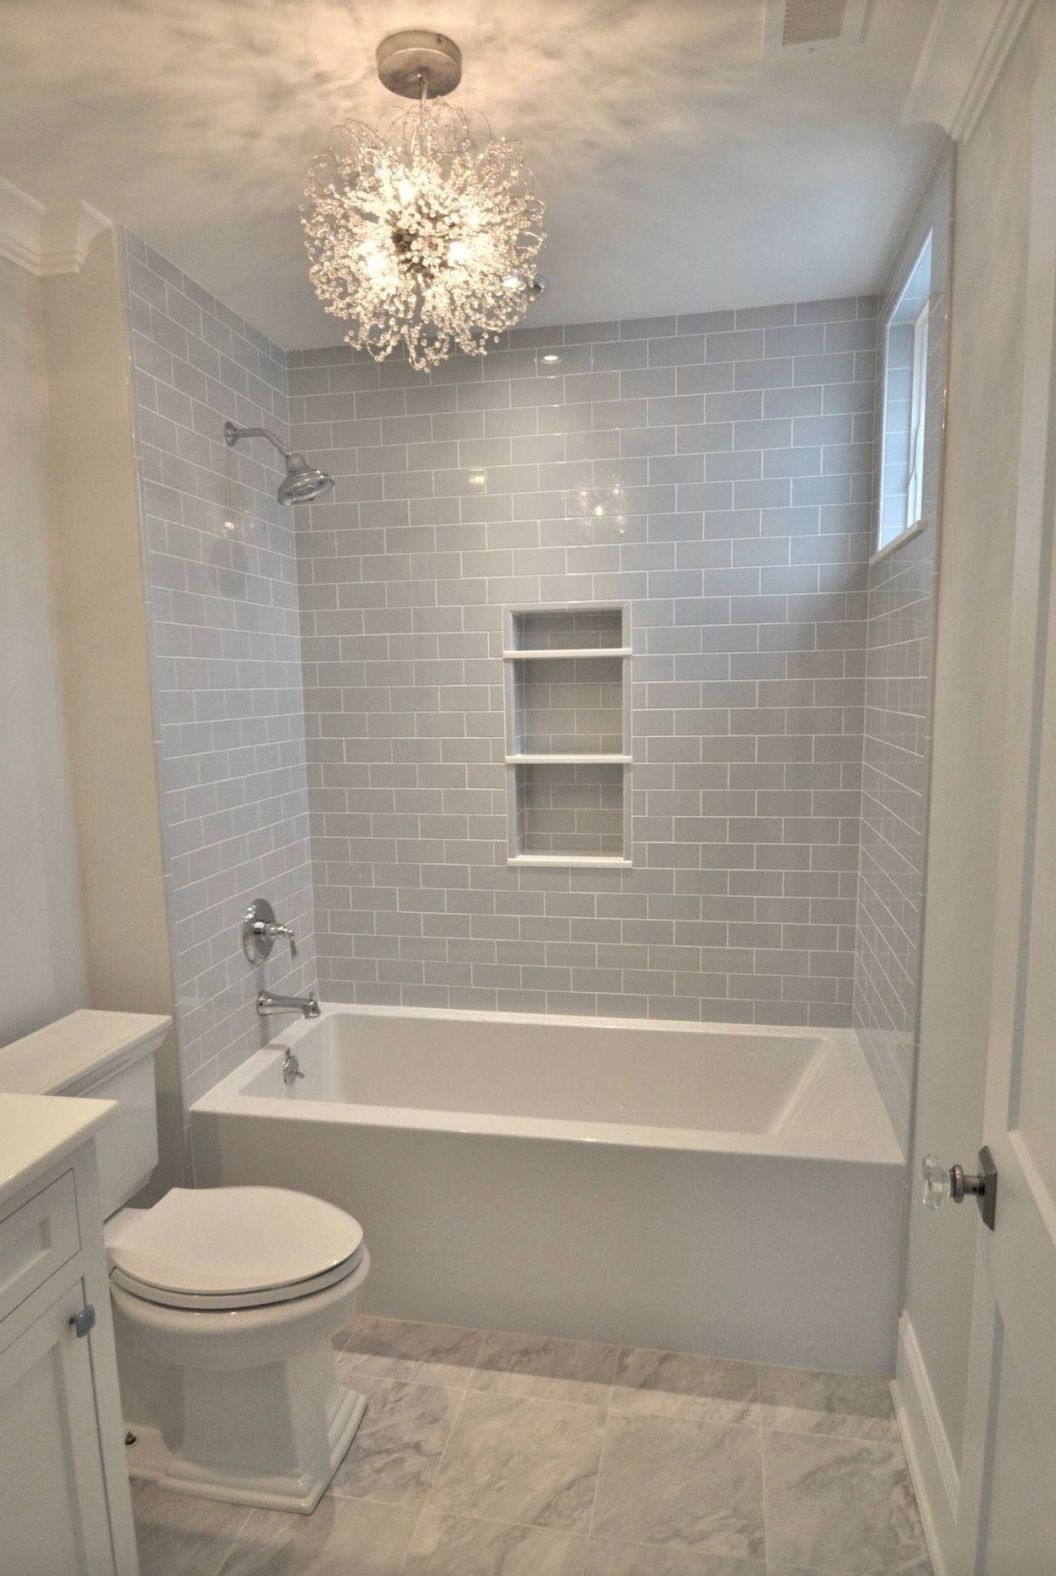 Most Amazing Small Bathroom Remodel in 2020 (With images ...